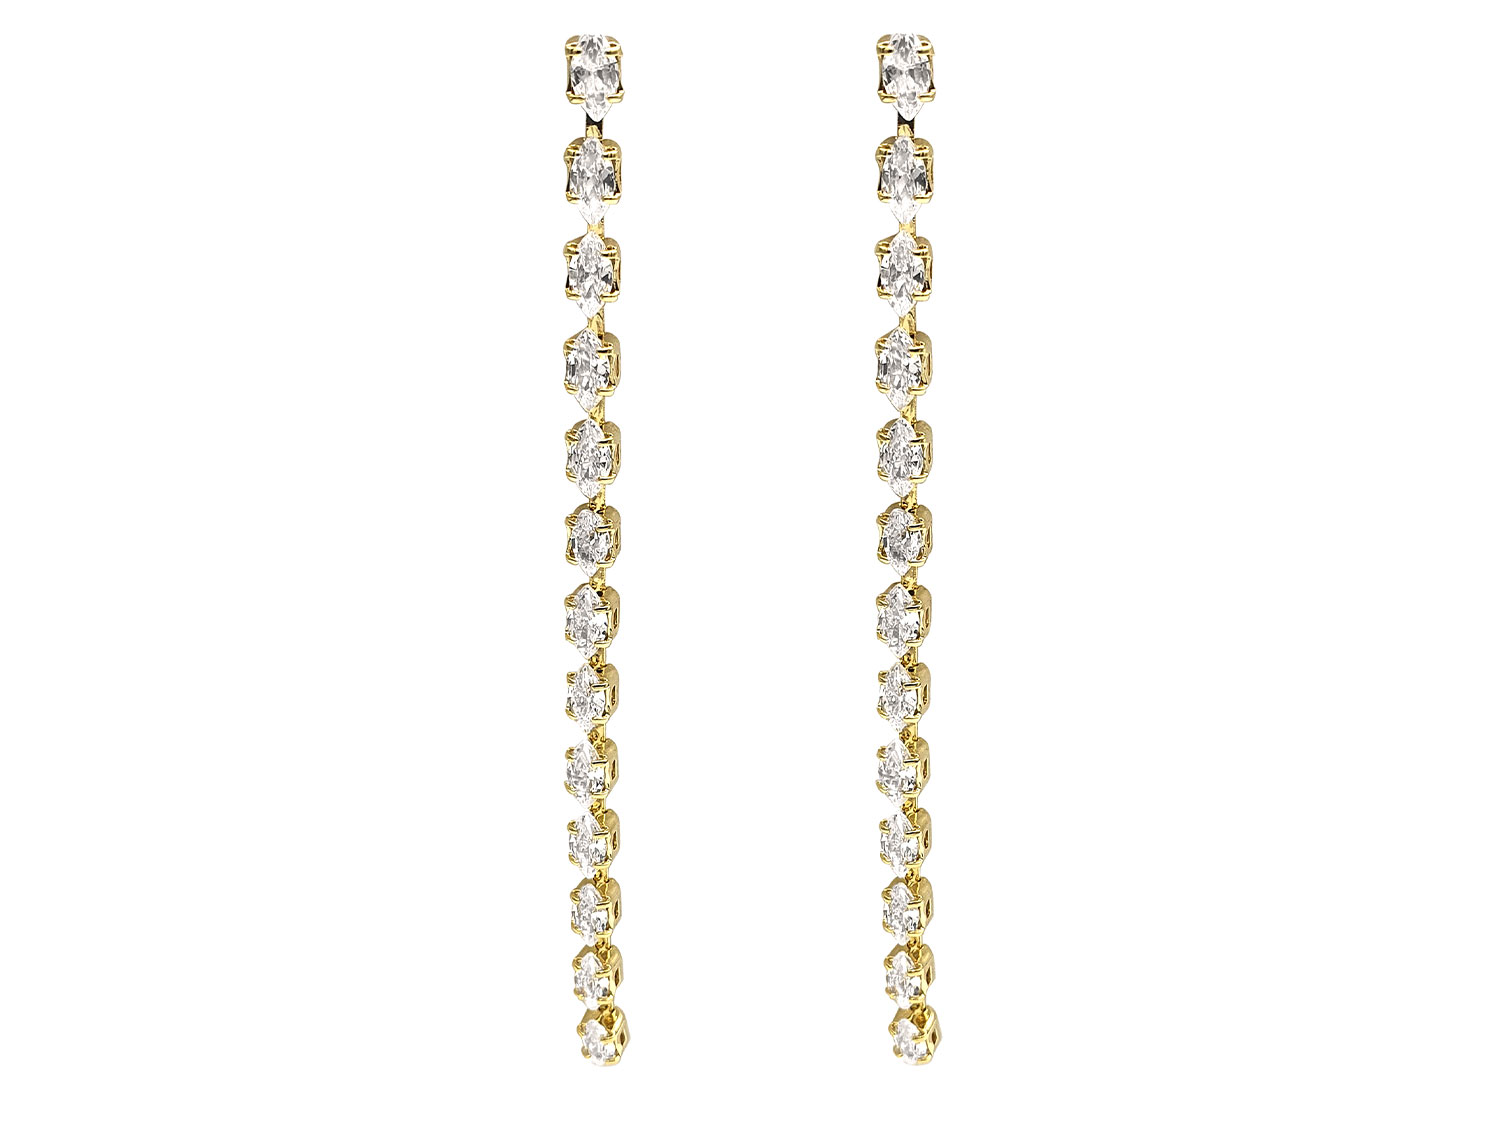 Sparkling Diamond Drop Earrings Gold Plated - Adema